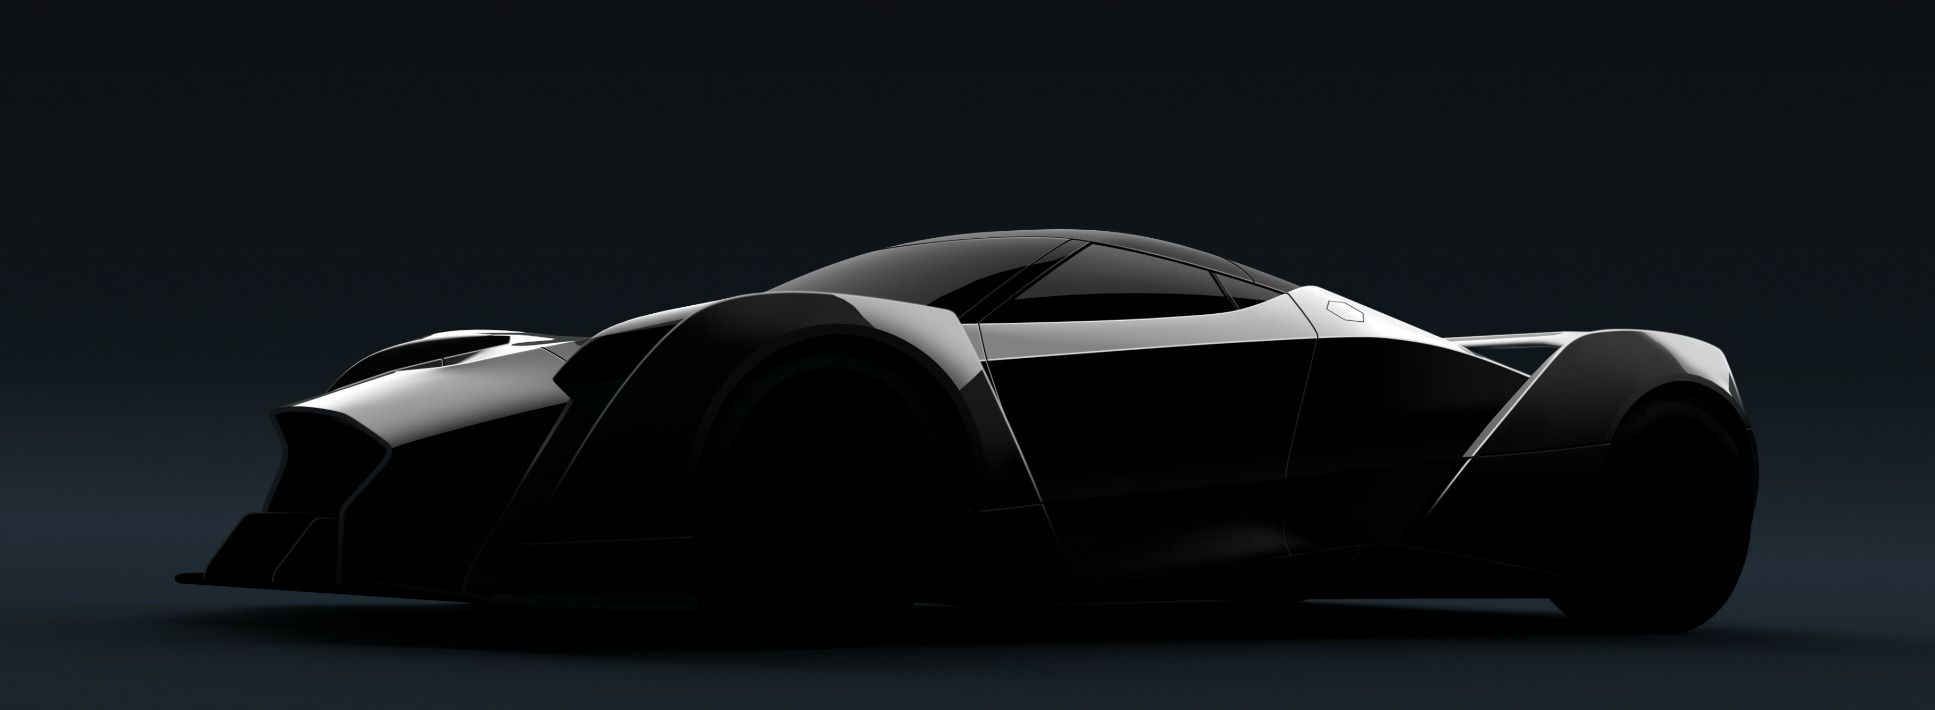 Take A Look At Singapore's First Hypercar